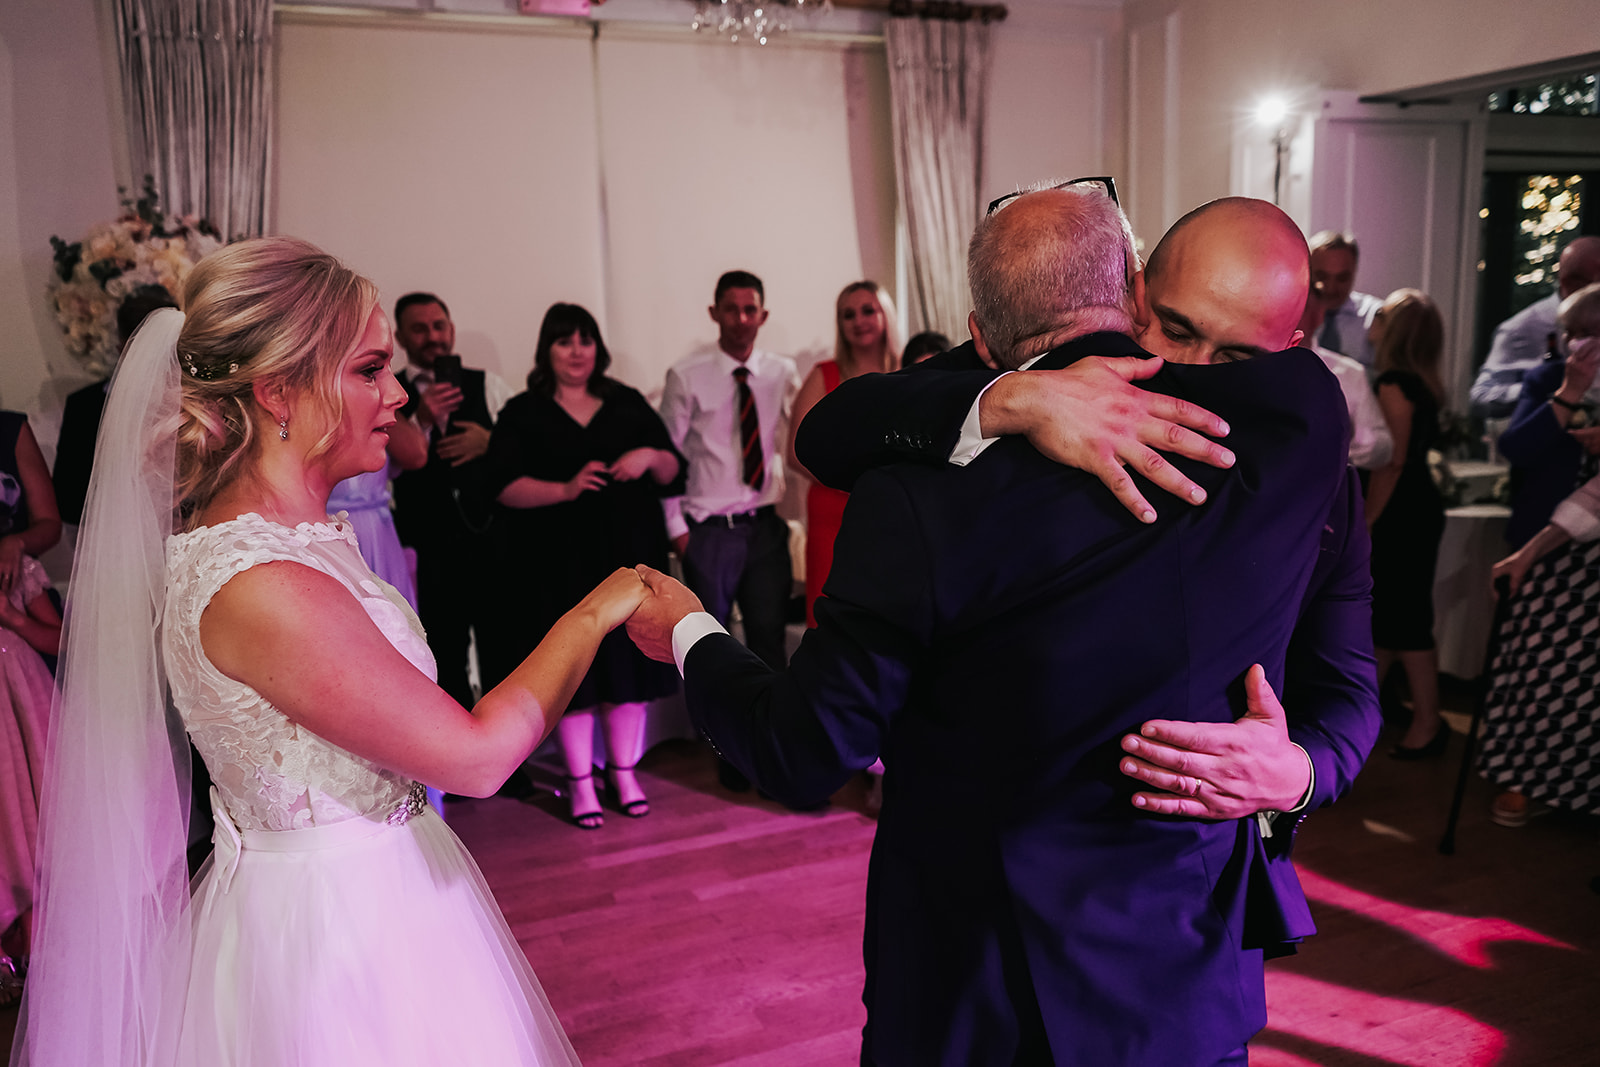 Bride's dad hugging groom as he passes her hand to the groom for their first dance